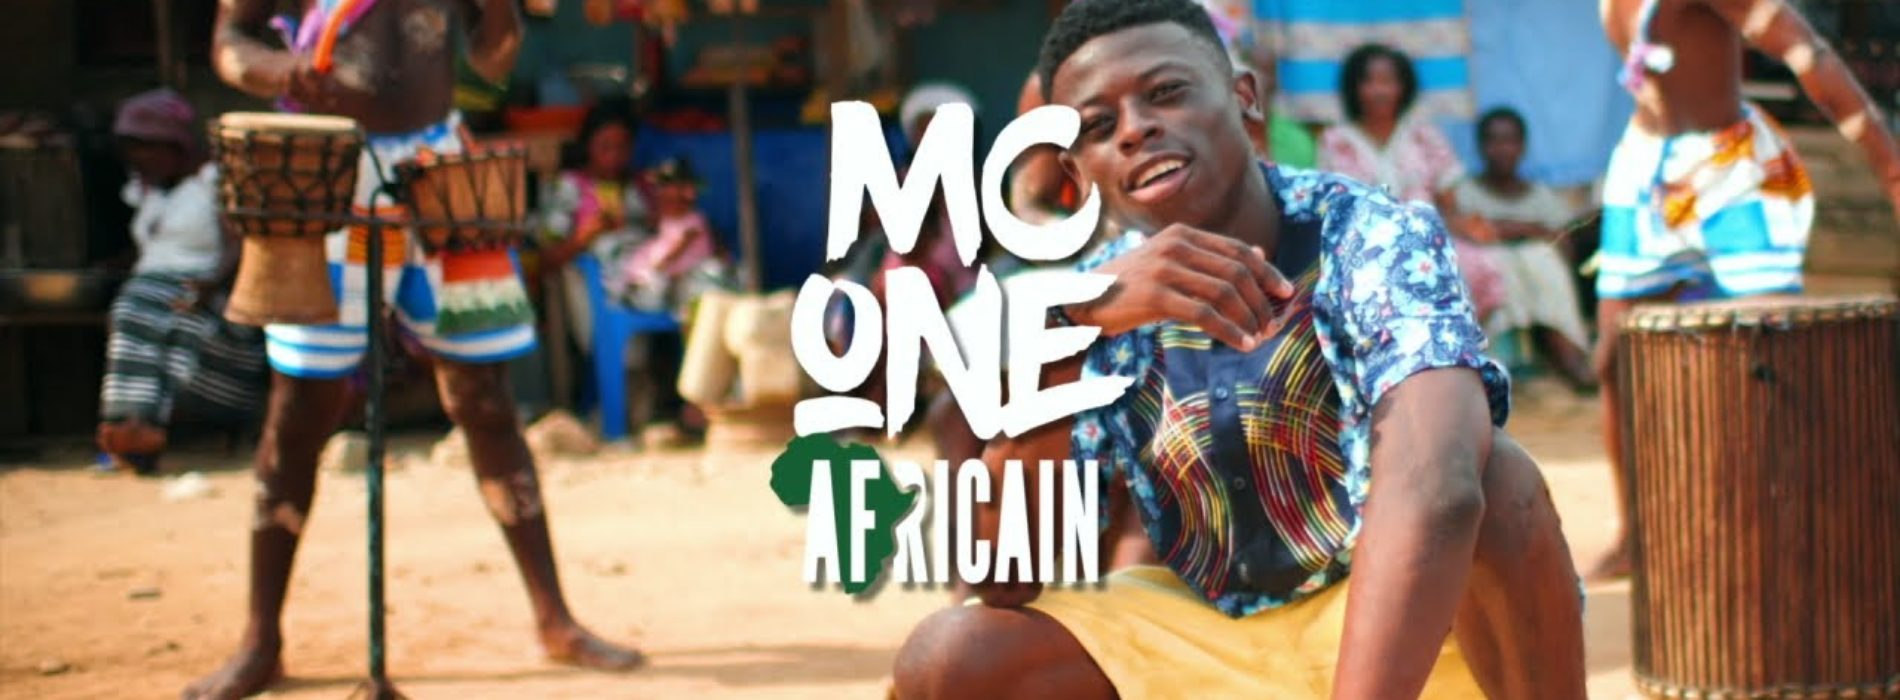 MC One – Africain (Clip officiel) – Avril 2020